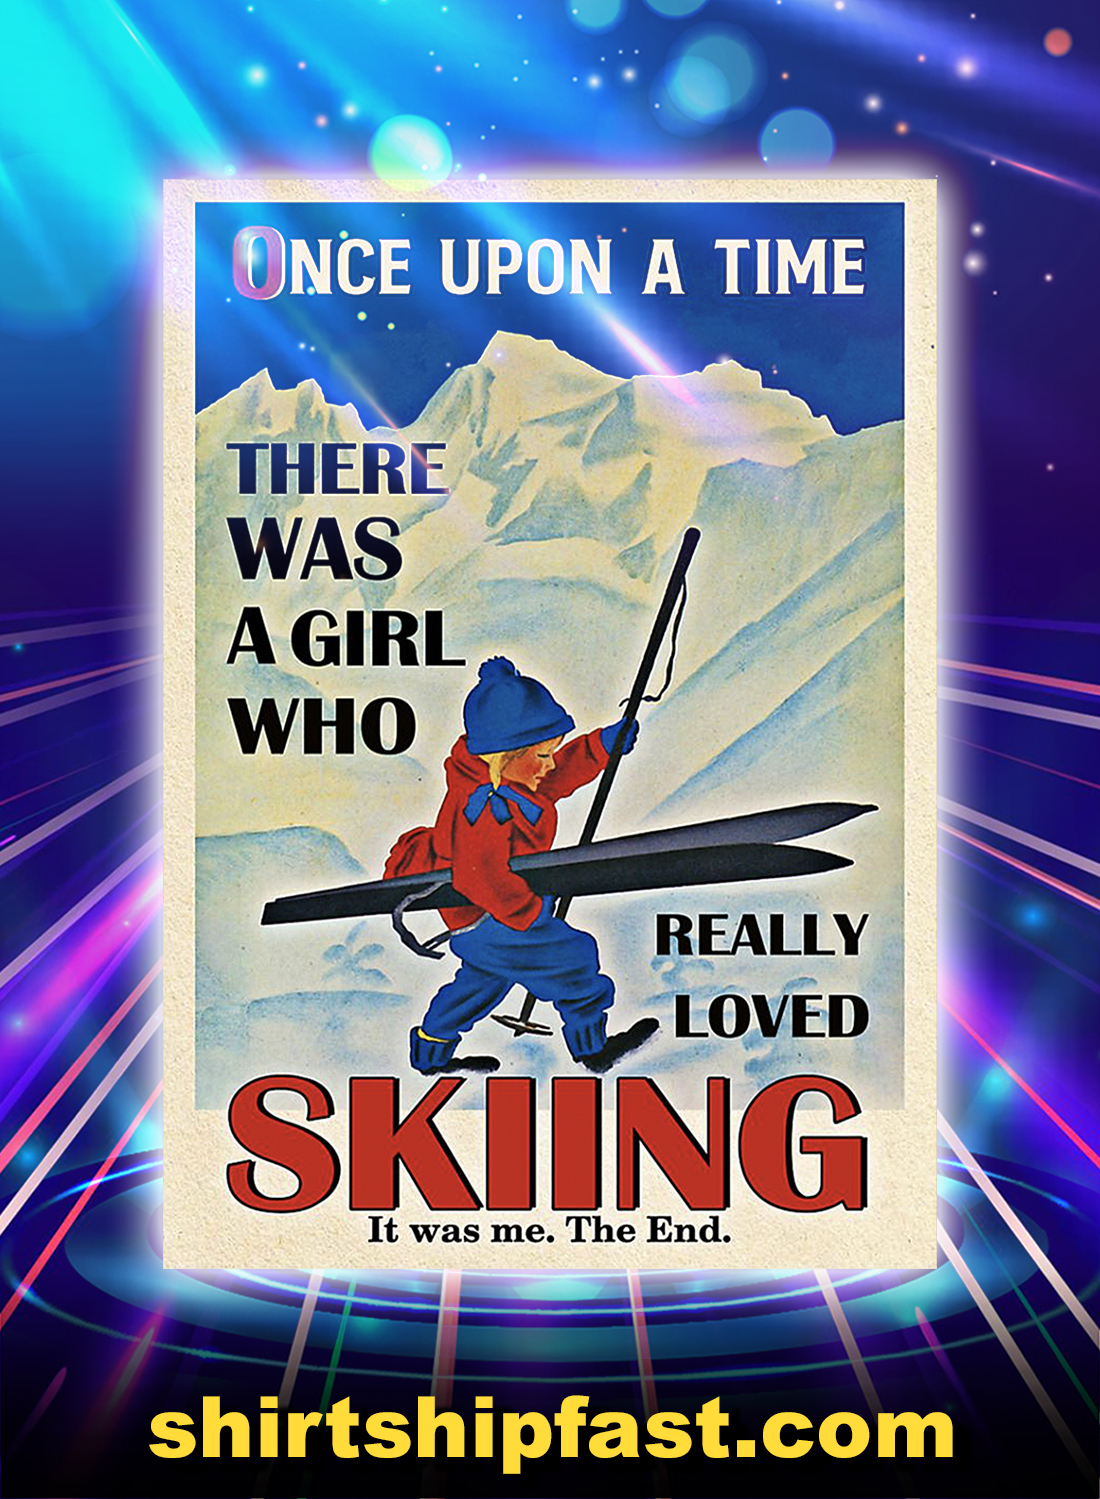 Once upon a time there was a girl who really loved skiing poster and canvas - Picture 3